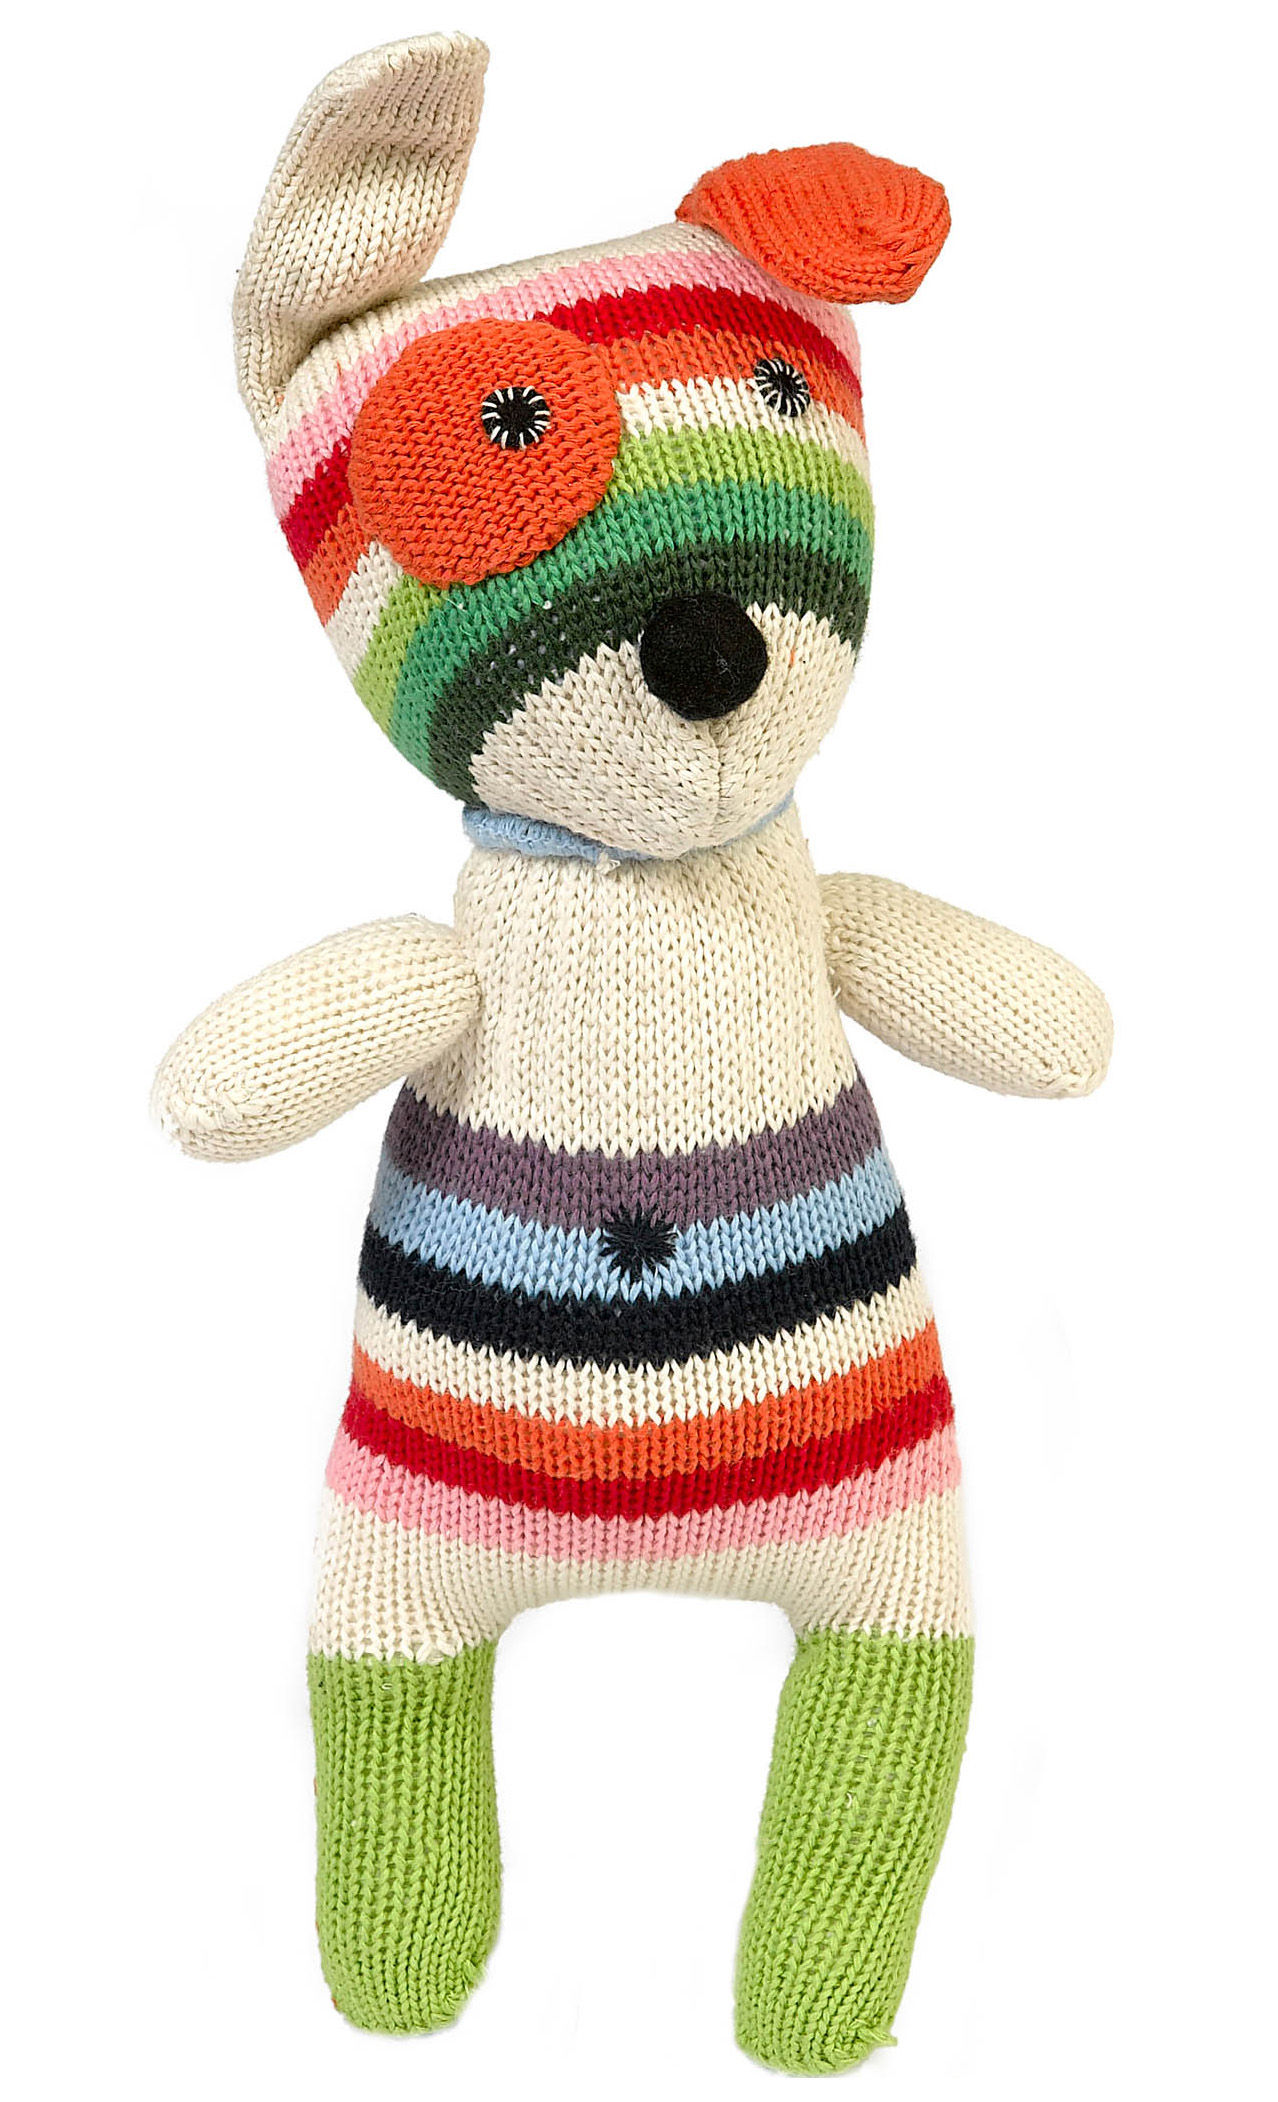 new small dog cuddly toy crochet cuddly toy mix by anne claire petit. Black Bedroom Furniture Sets. Home Design Ideas